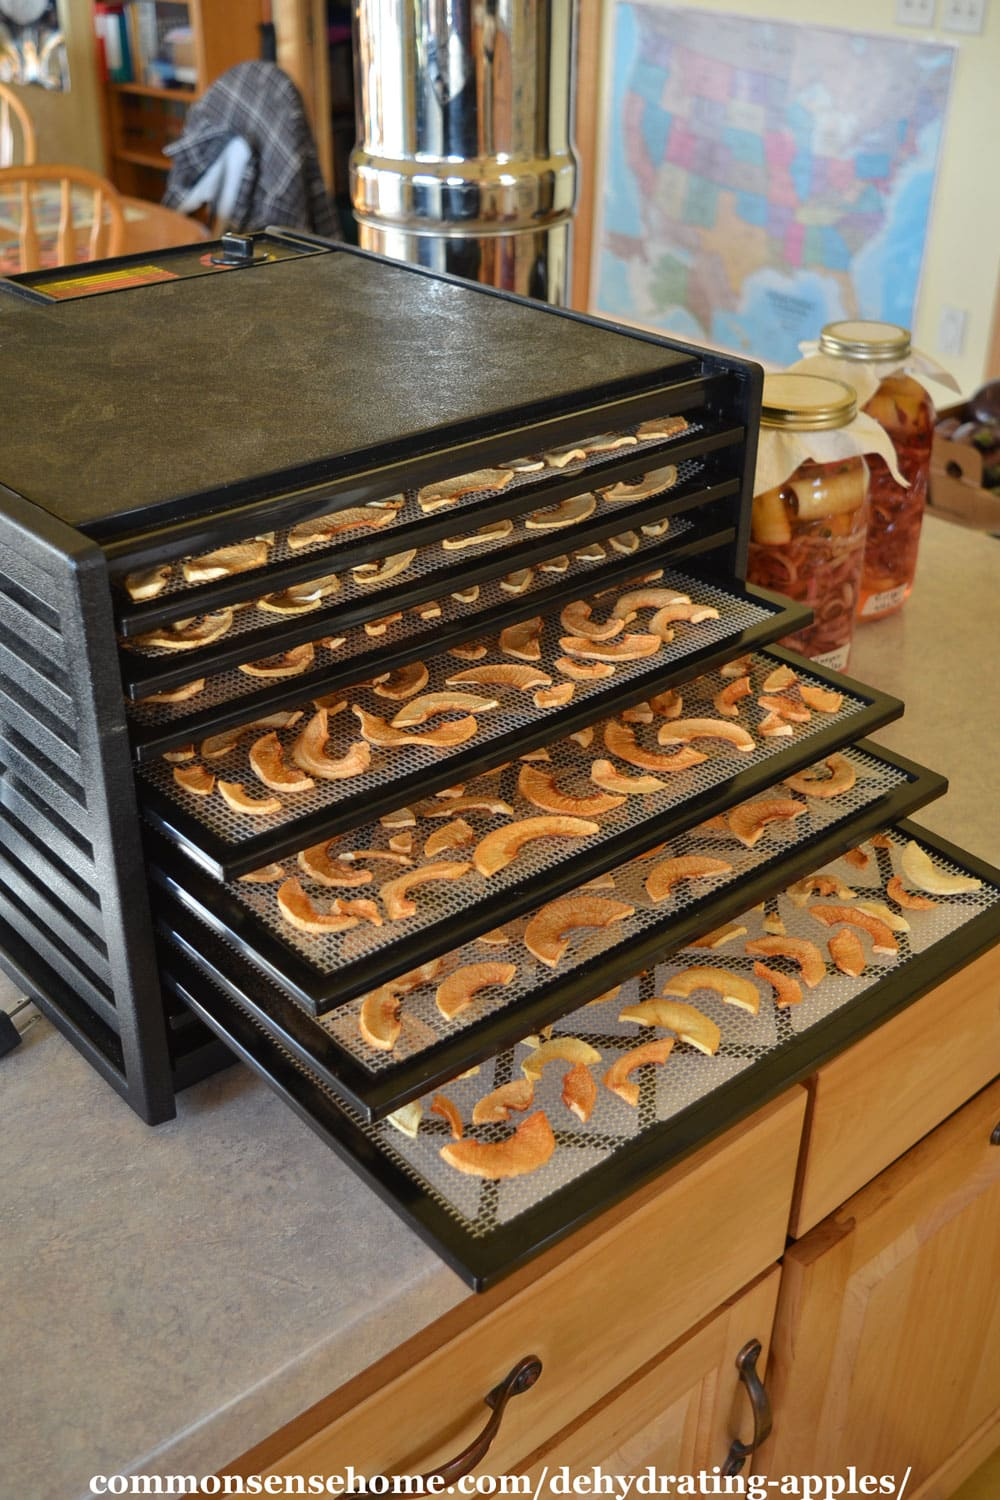 Dehydrated apples in Excalibur dehydrator